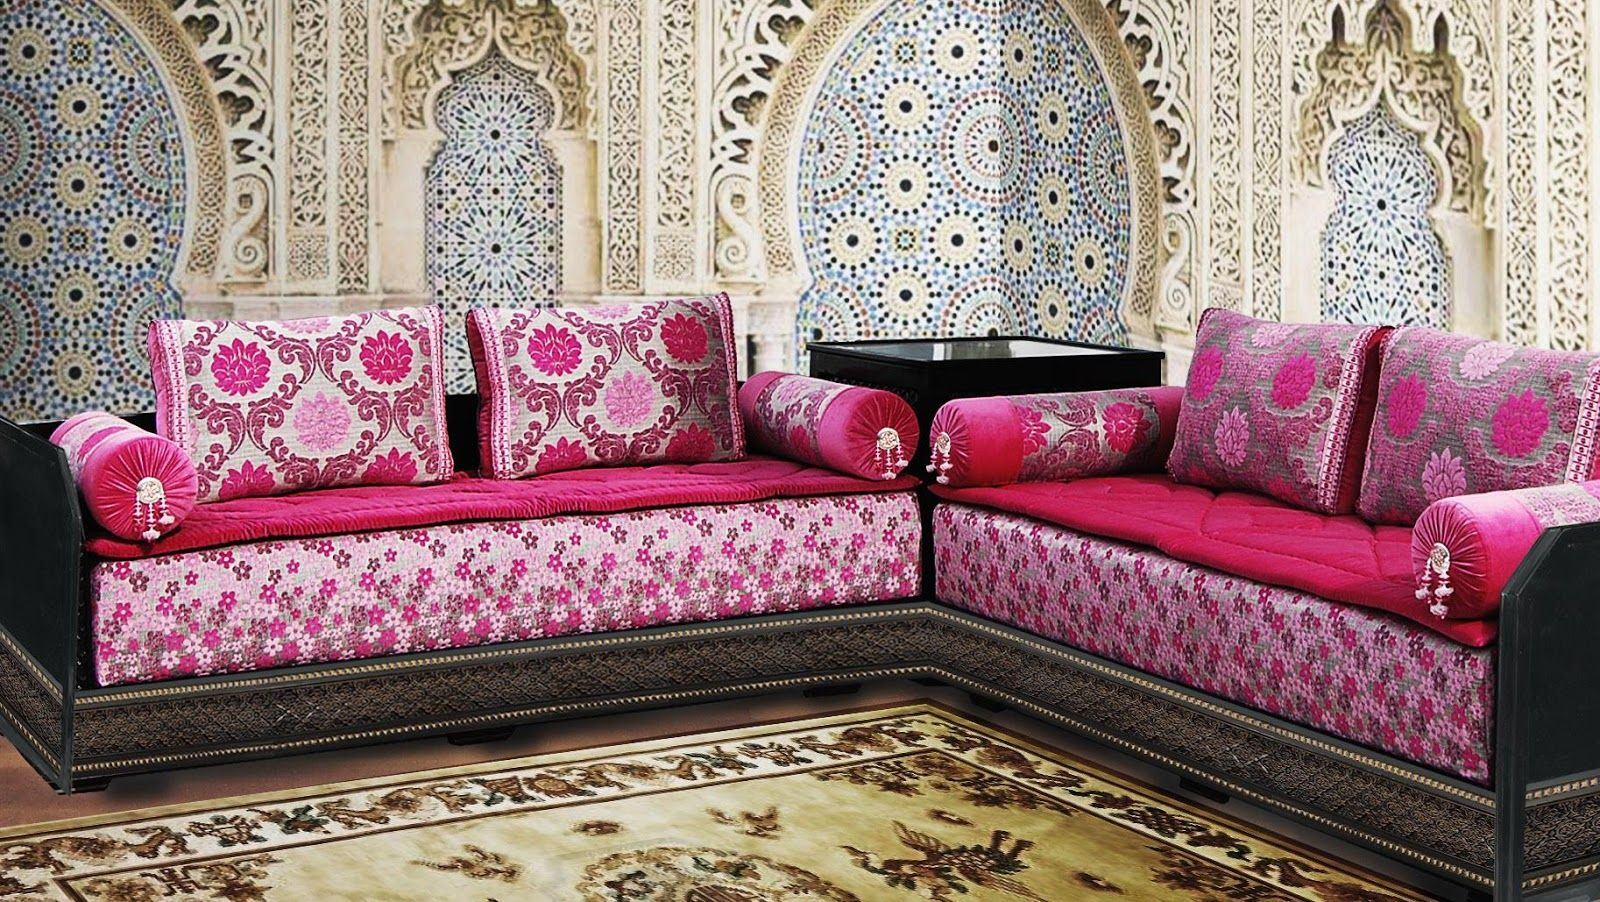 salon marocain design exceptionnel salon marocain. Black Bedroom Furniture Sets. Home Design Ideas